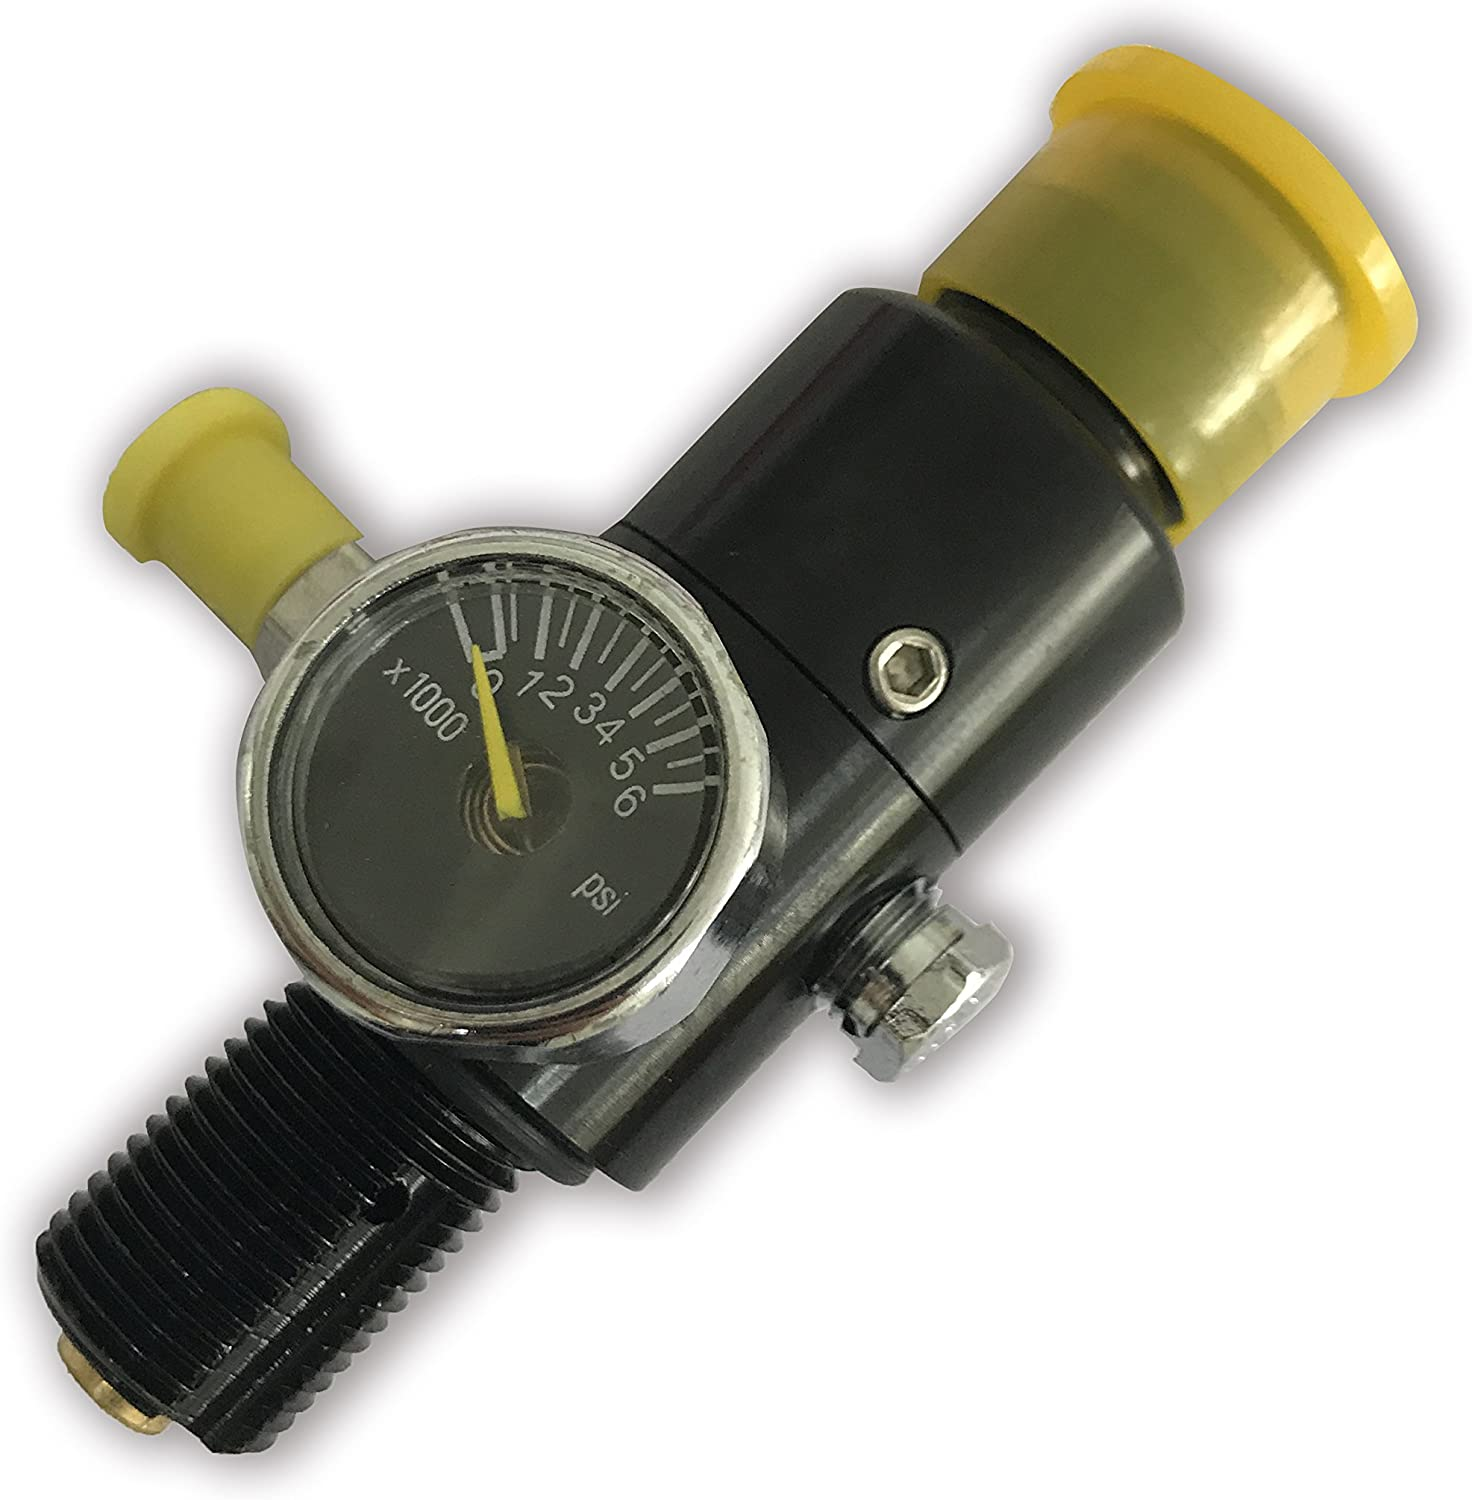 Acecare Adaptor Or Regulator for 4500 psi Composite Tank with 850 PSI Output Pressure